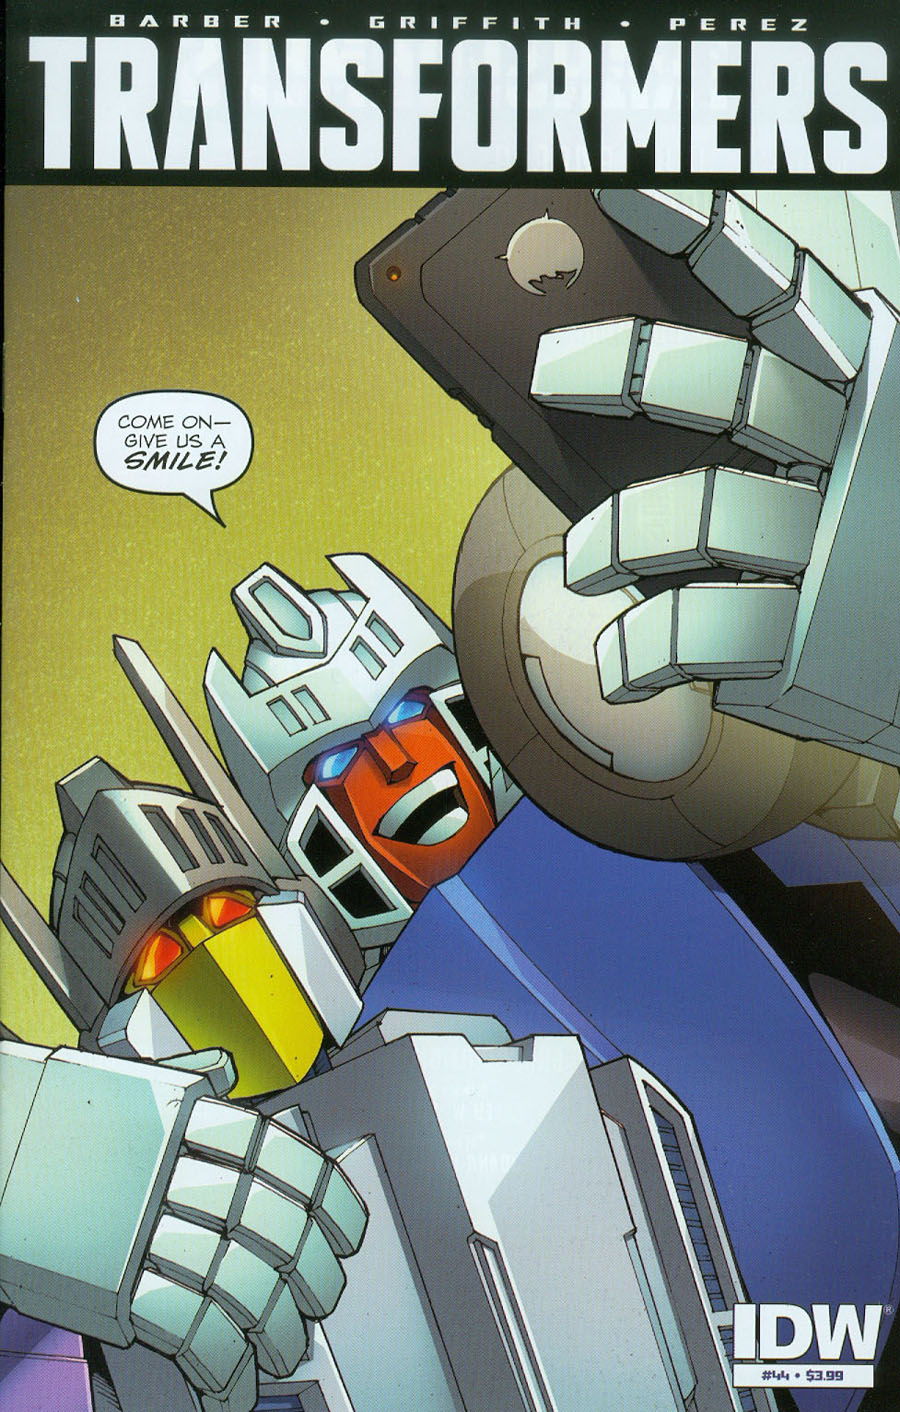 Transformers Vol 3 #44 Cover A Regular Andrew Griffith Cover